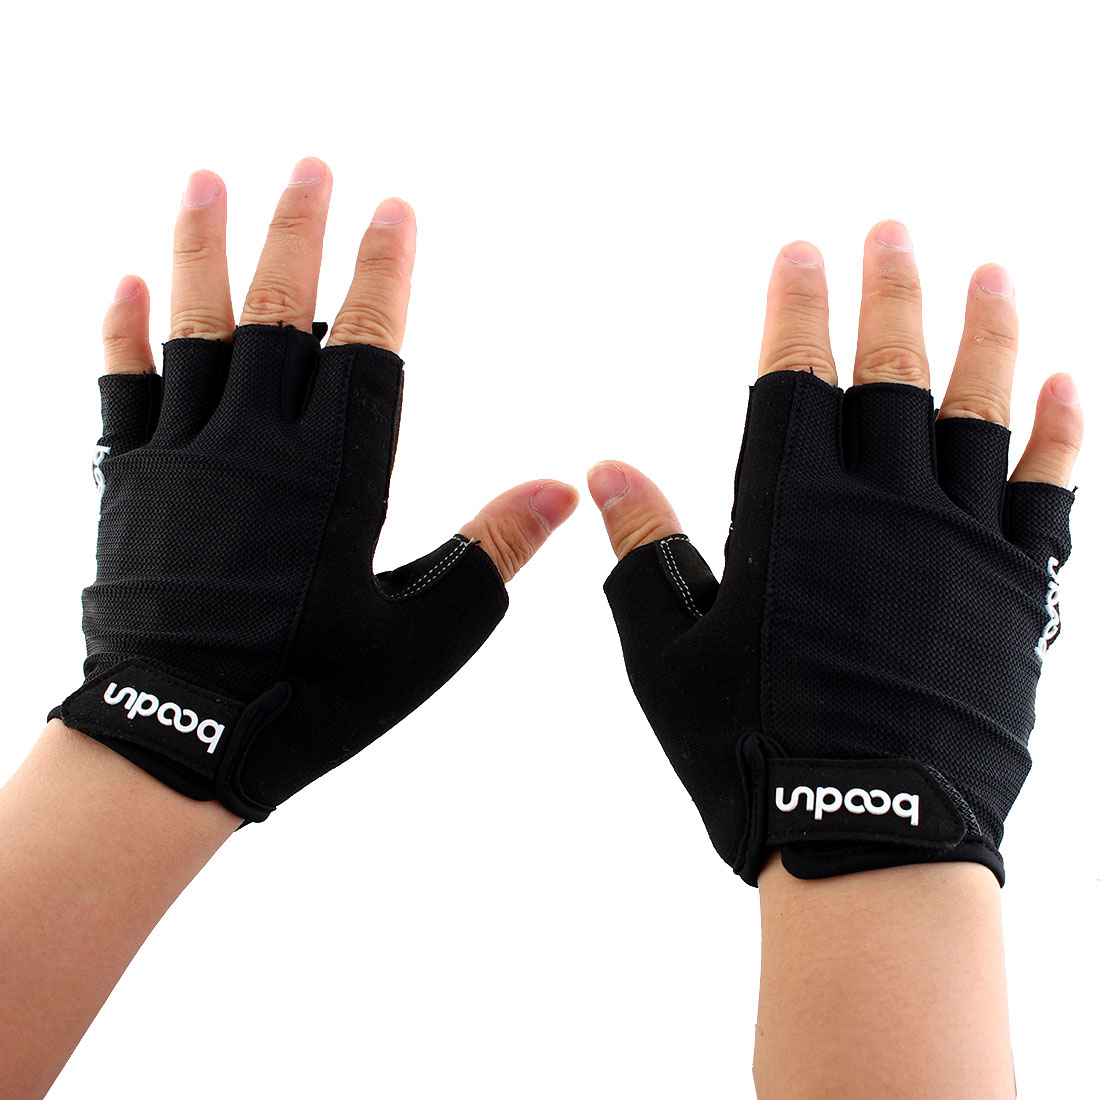 Boodun Authorized Outdoor Cycling Gym Workout Training Weight Lifting Half Finger Gloves Black Size L Pair for Men Women